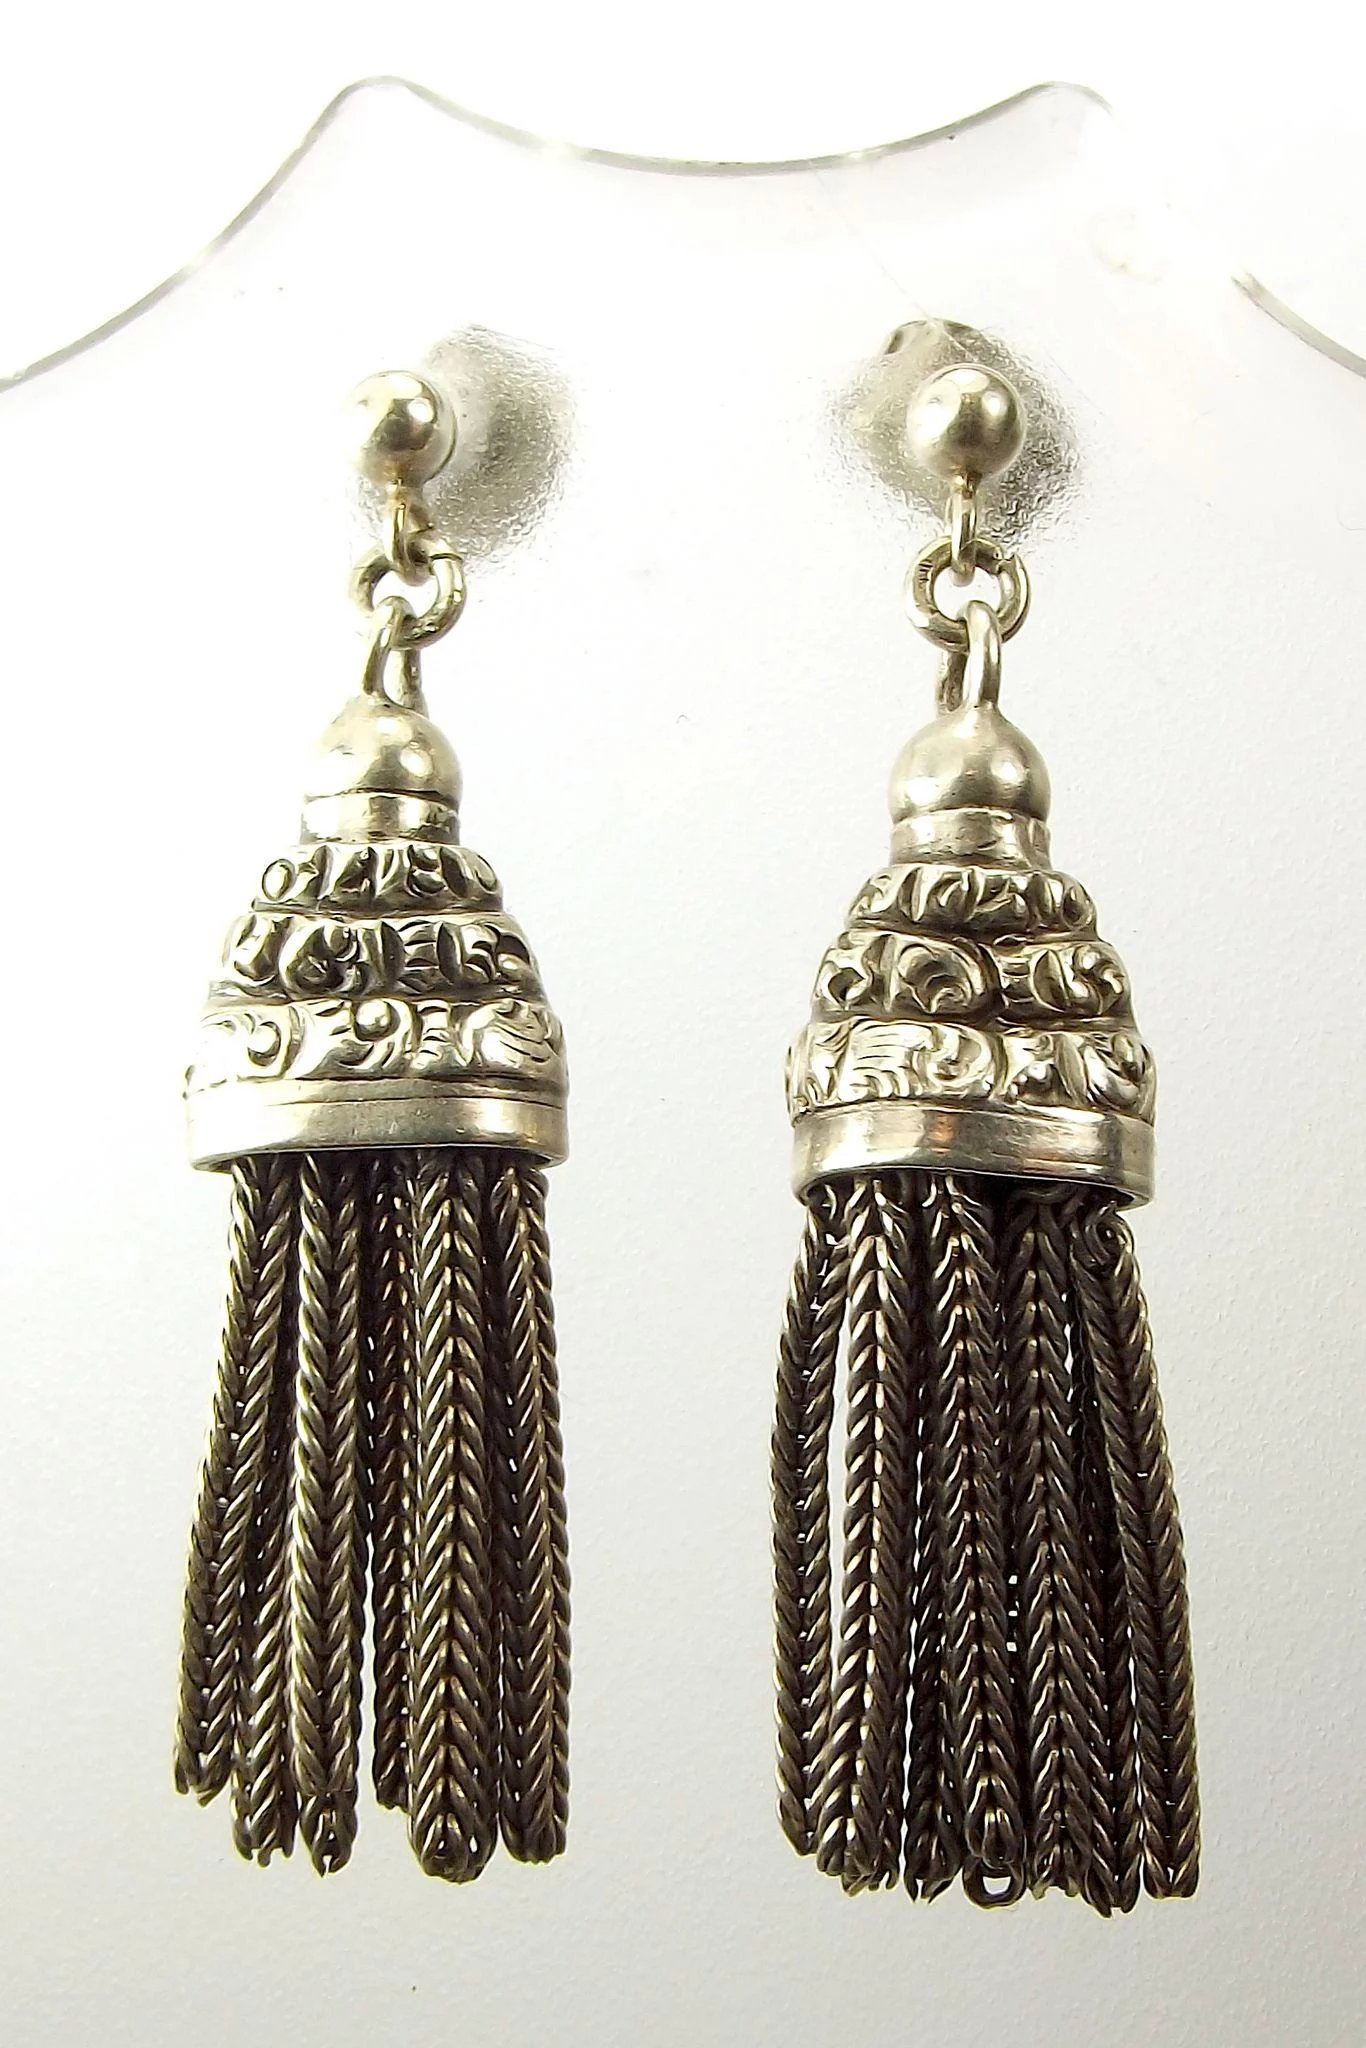 gold victorian earrings k caymancode filigree antique